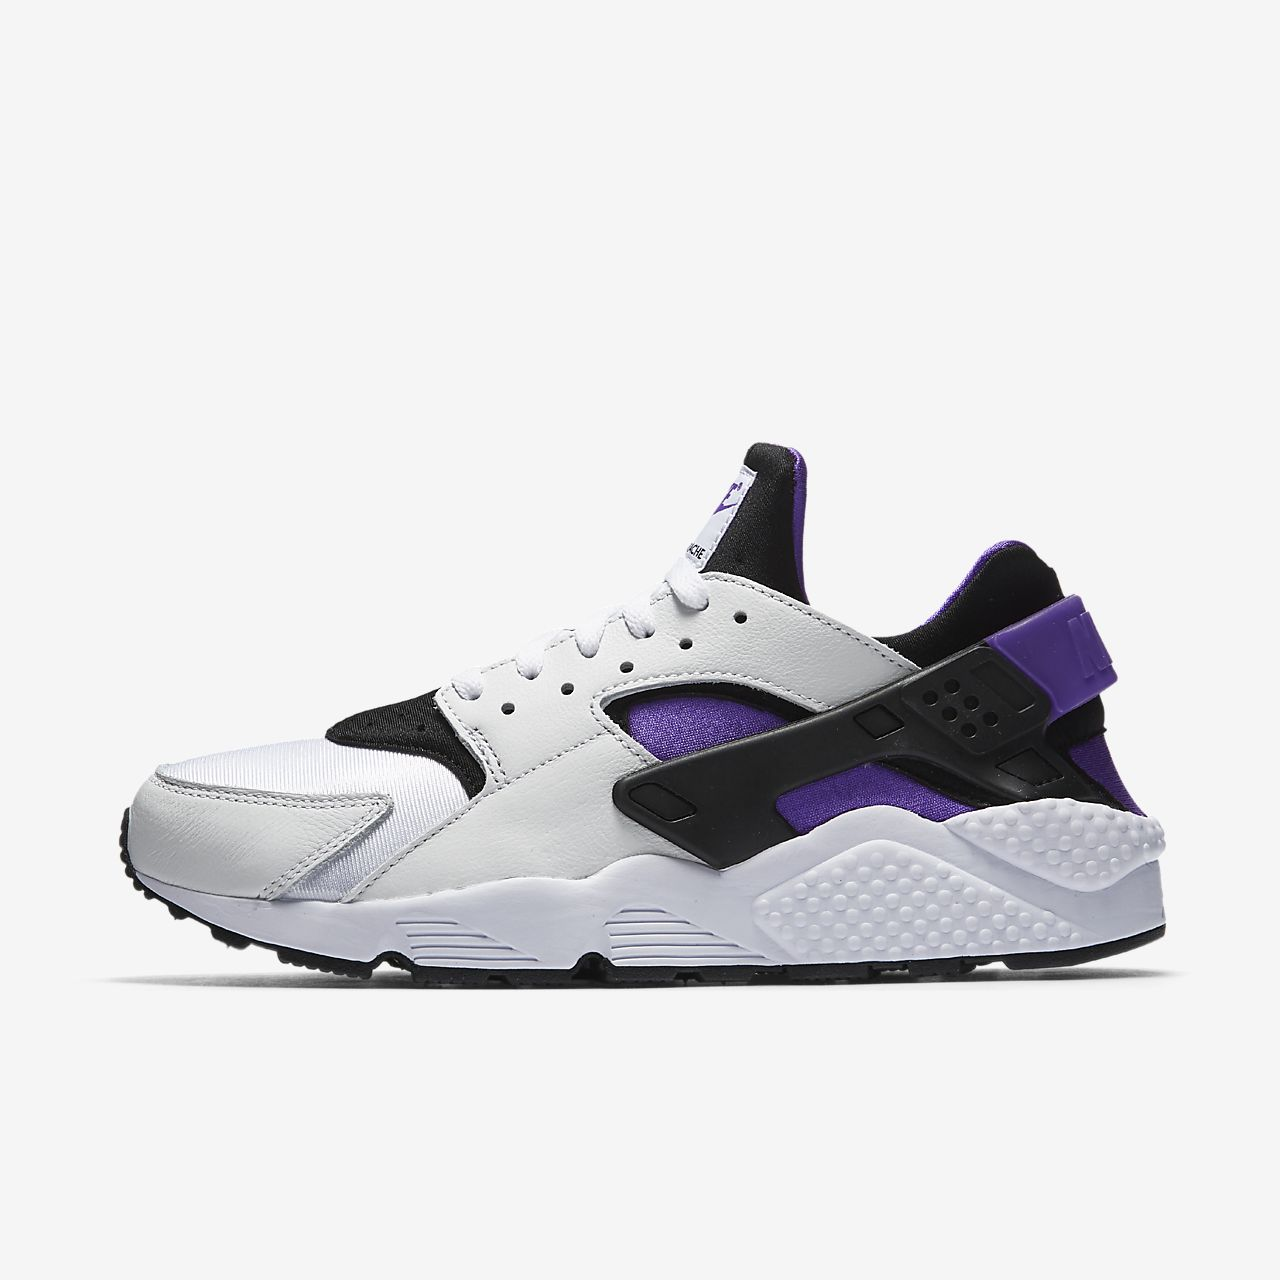 deaed11f9fbda0 Nike Air Huarache  91 QS Men s Shoe. Nike.com